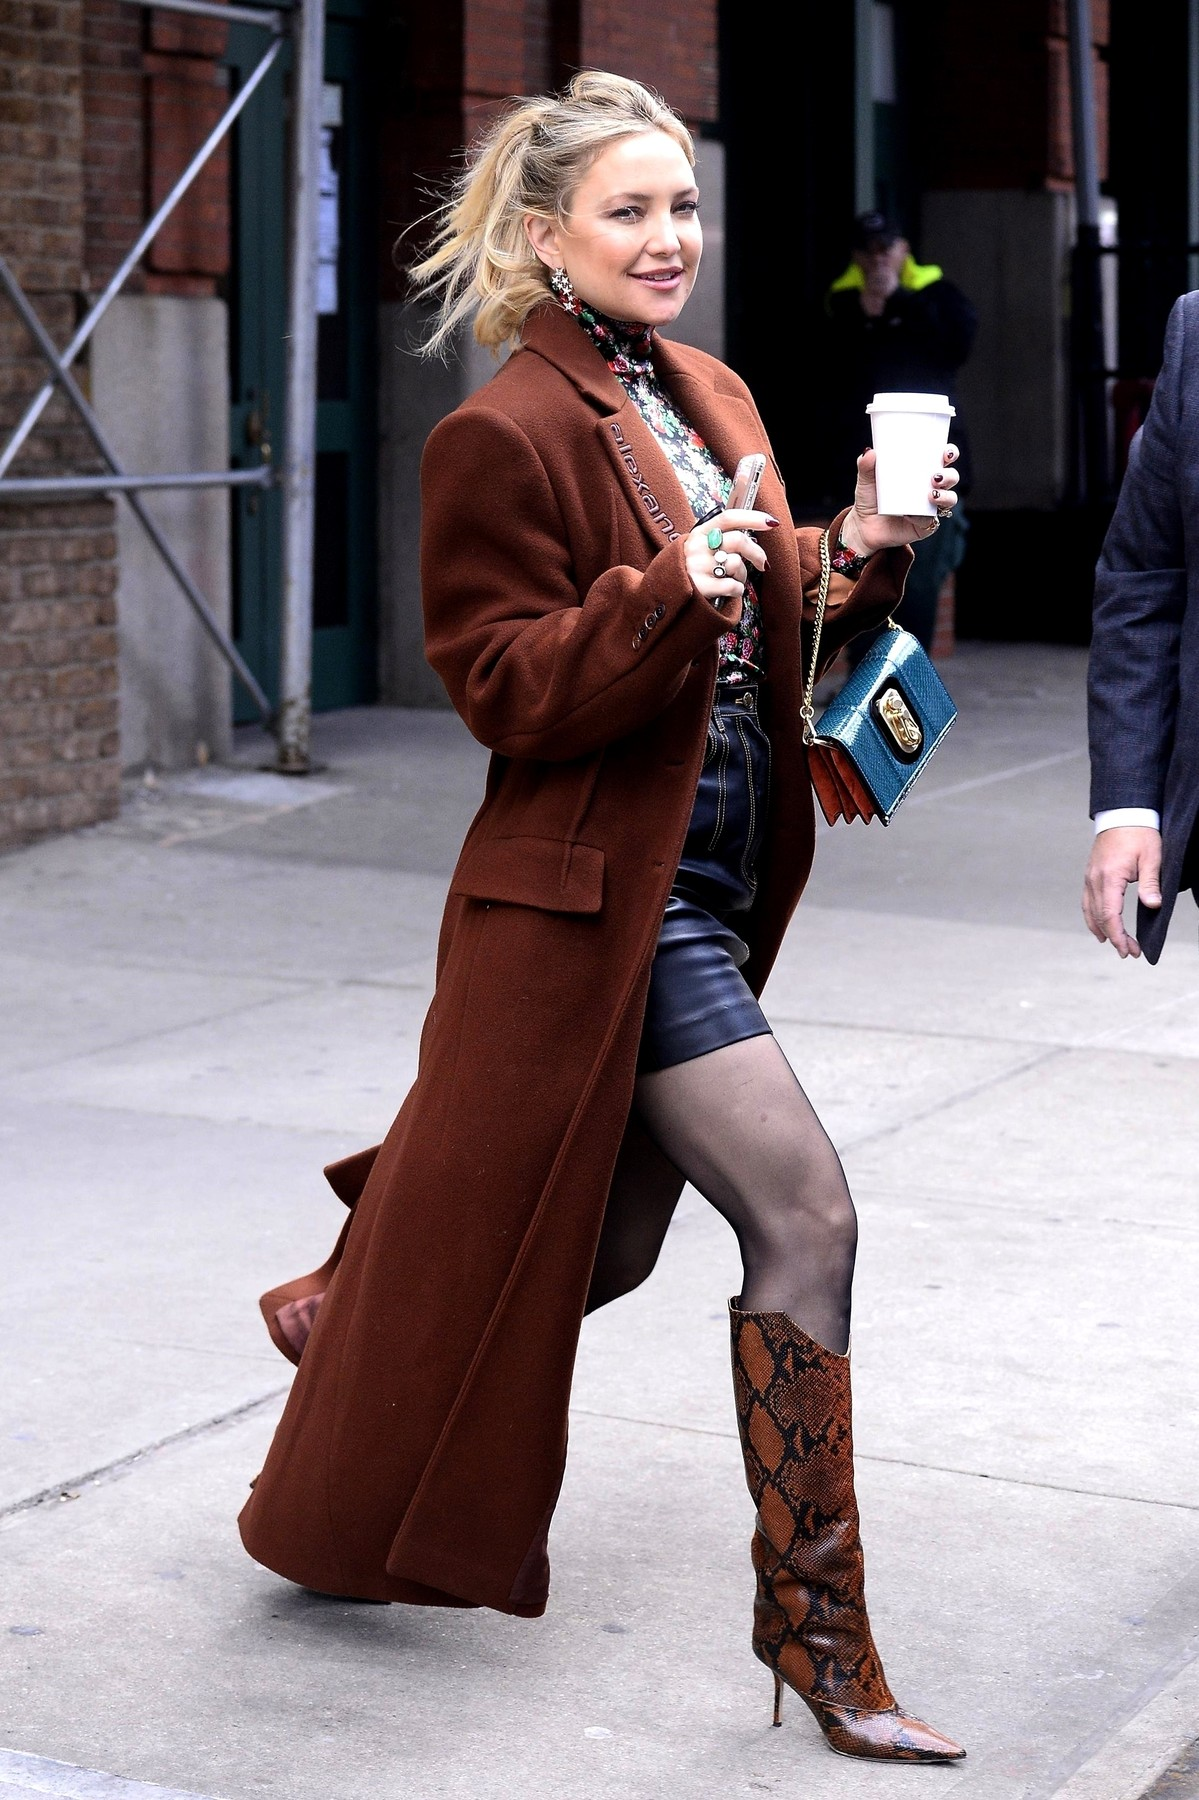 New York, NY  - *EXCLUSIVE*  - Actress Kate Hudson seen exiting the The Greenwich Hotel this morning with a coffee in hand and her signature bright smile in tow.  The mother of three looked chic in a Alexander Wang trench over a floral blouse with leather skirt, black stockings and snake skin boots for her day in the city.  *UK Clients - Pictures Containing Children Please Pixelate Face Prior To Publication*, Image: 486559773, License: Rights-managed, Restrictions: , Model Release: no, Credit line: JosiahW / BACKGRID / Backgrid USA / Profimedia